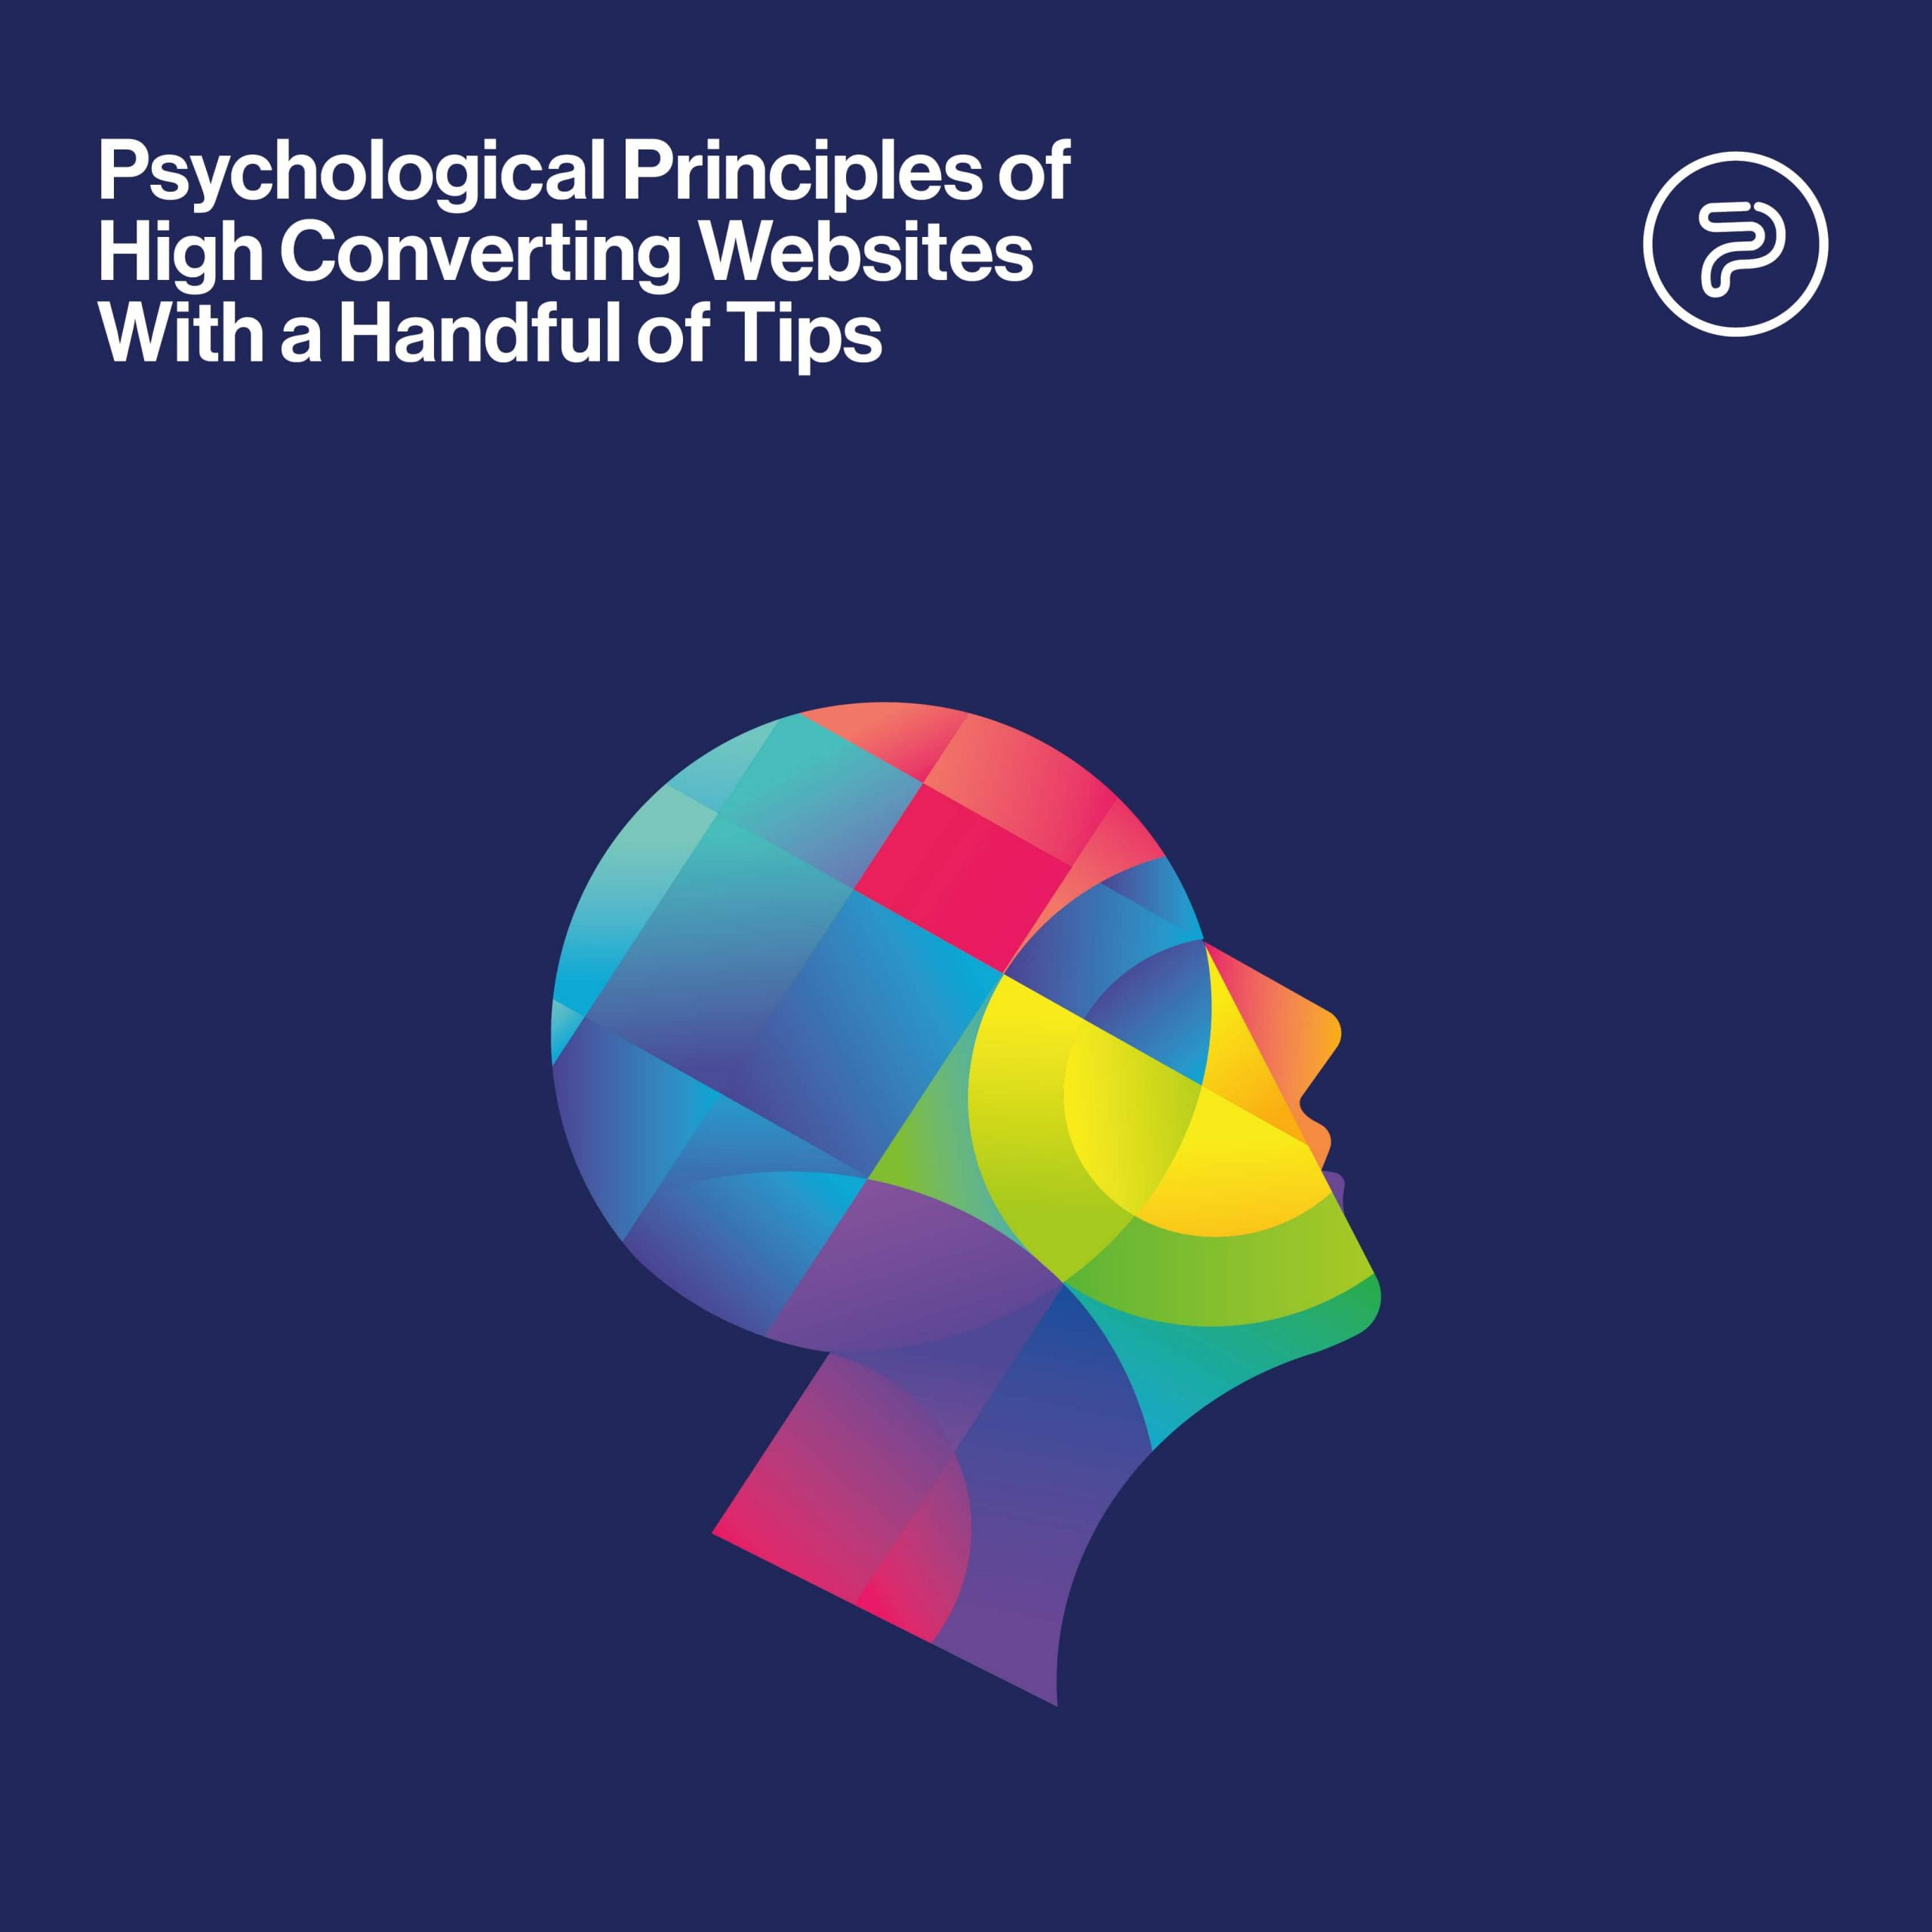 Psychological Principles of High Converting Websites With a Handful of Tips